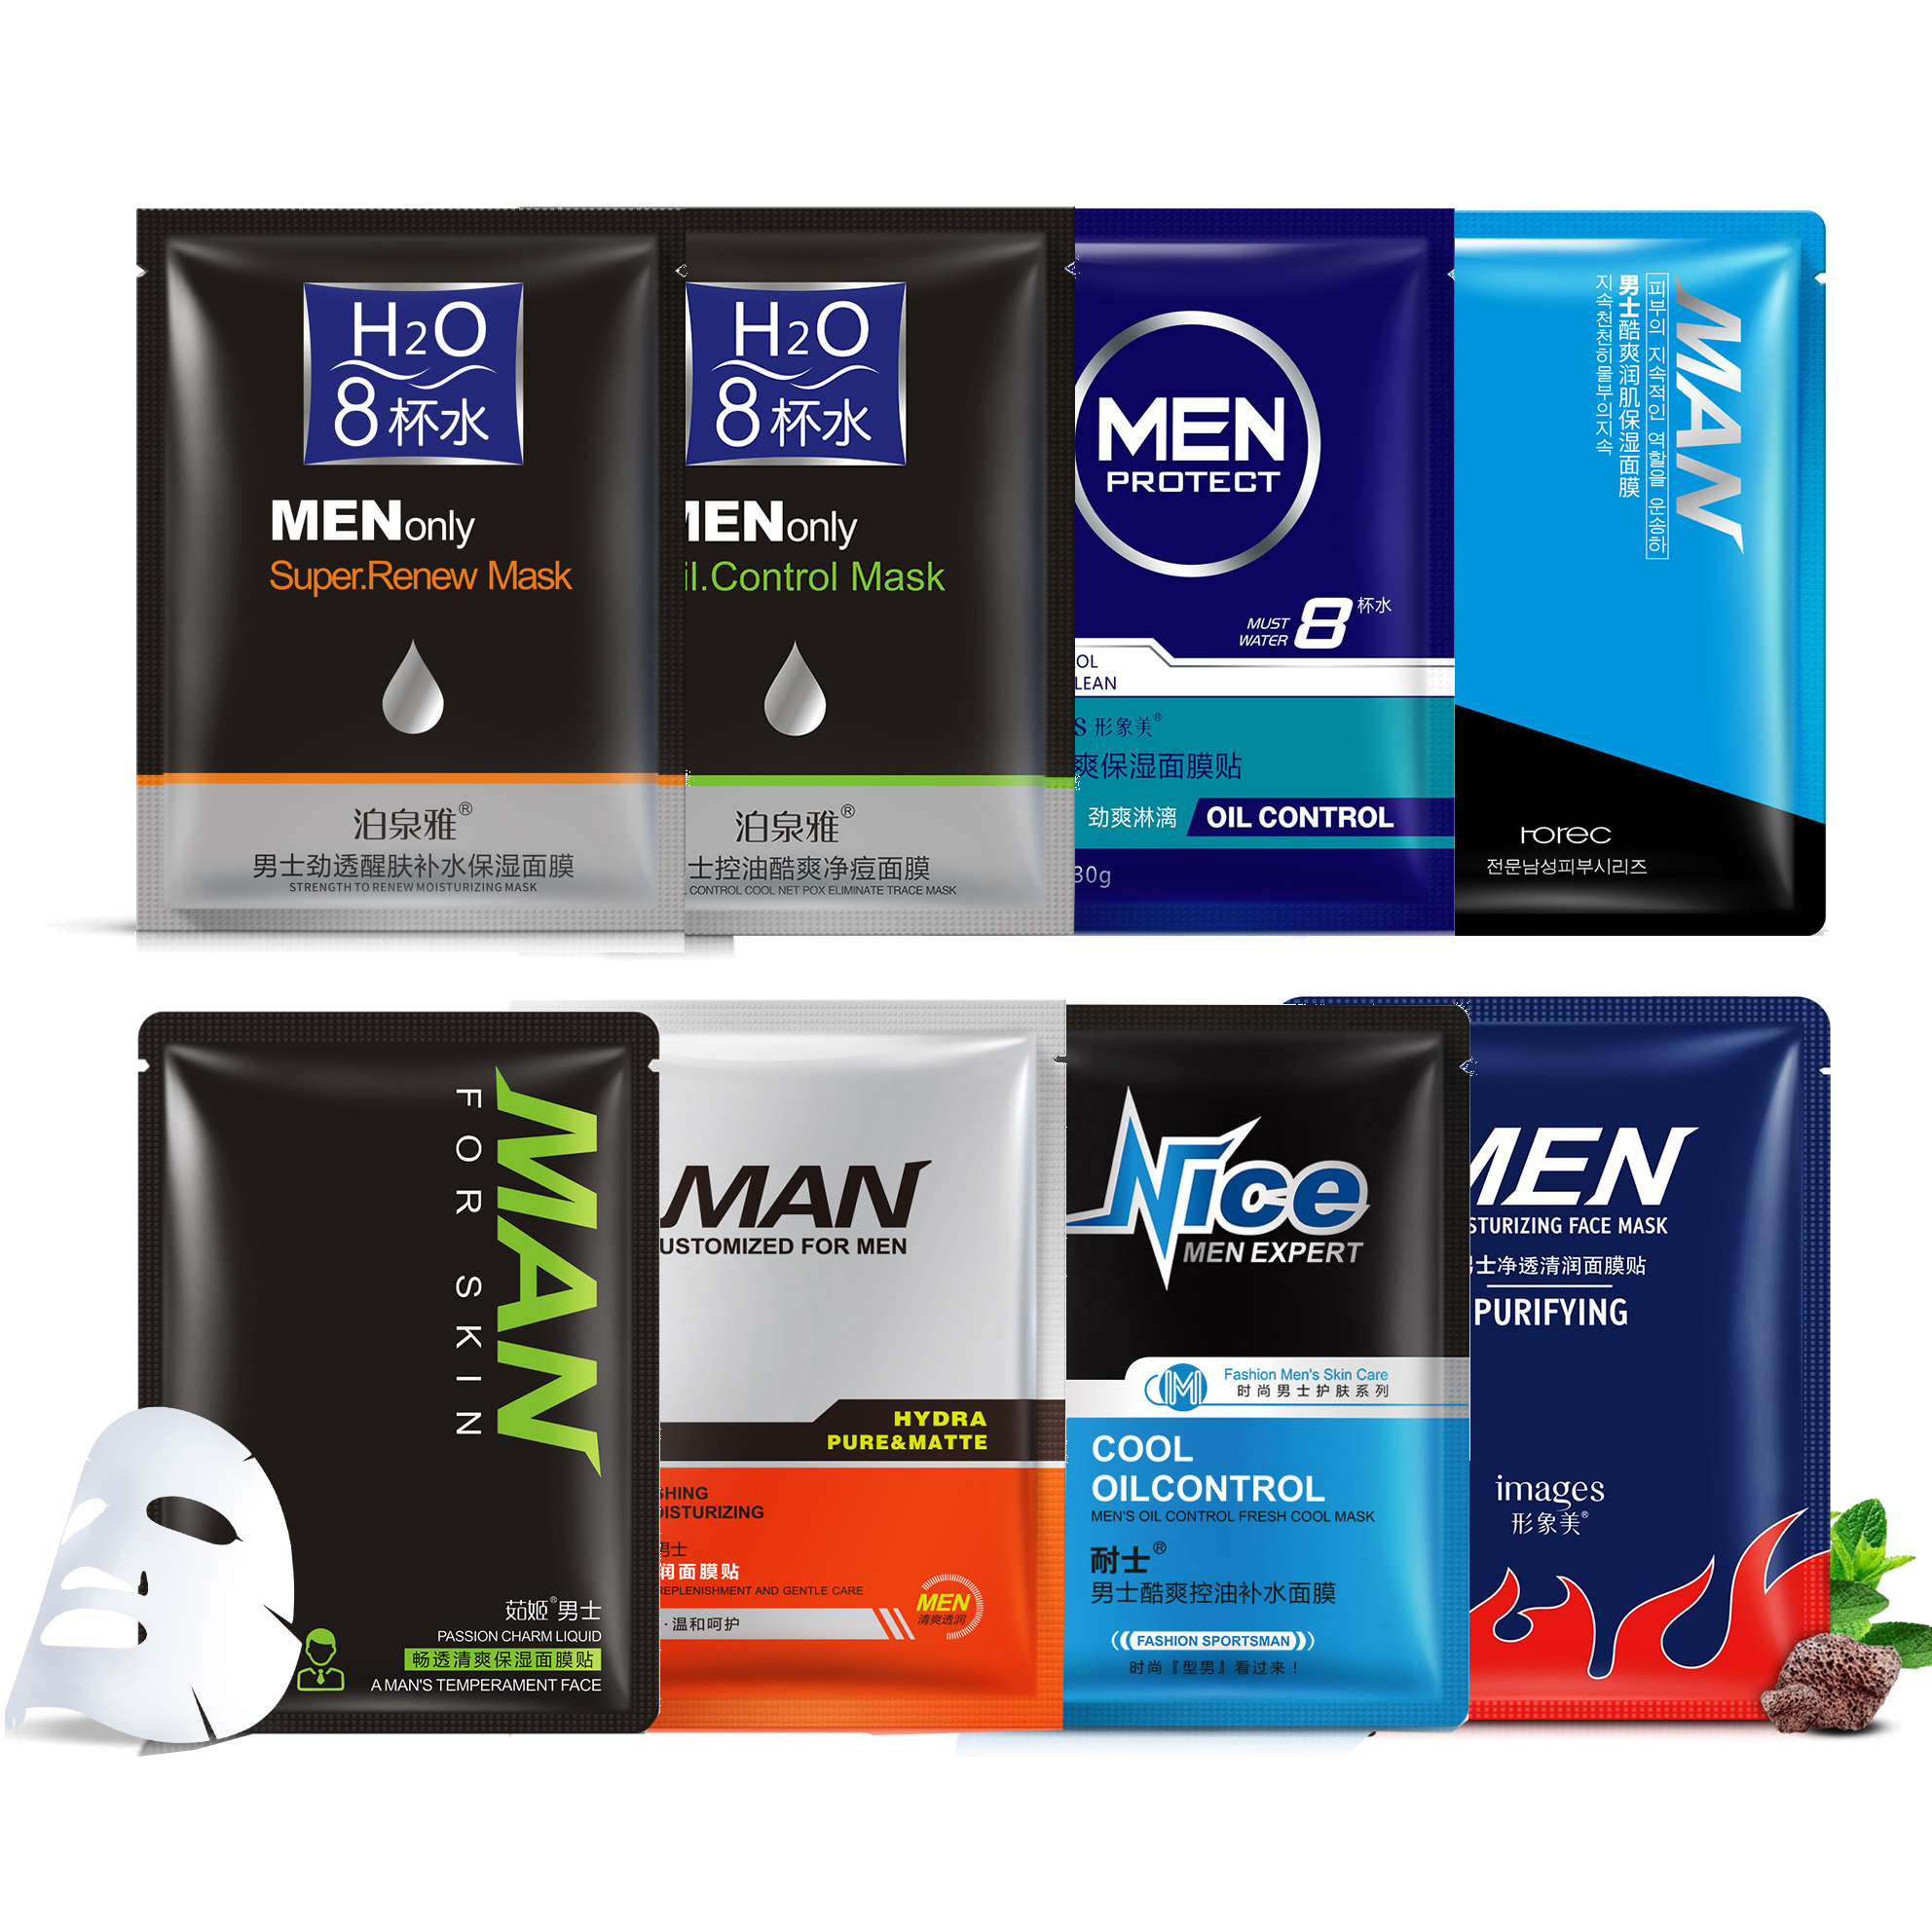 IMAGES Moisturizing Hydrating Water-locking Facial Mask Oil Control Anti-acne Fresh Nourishing Cool Mask For Men Only Skin Care